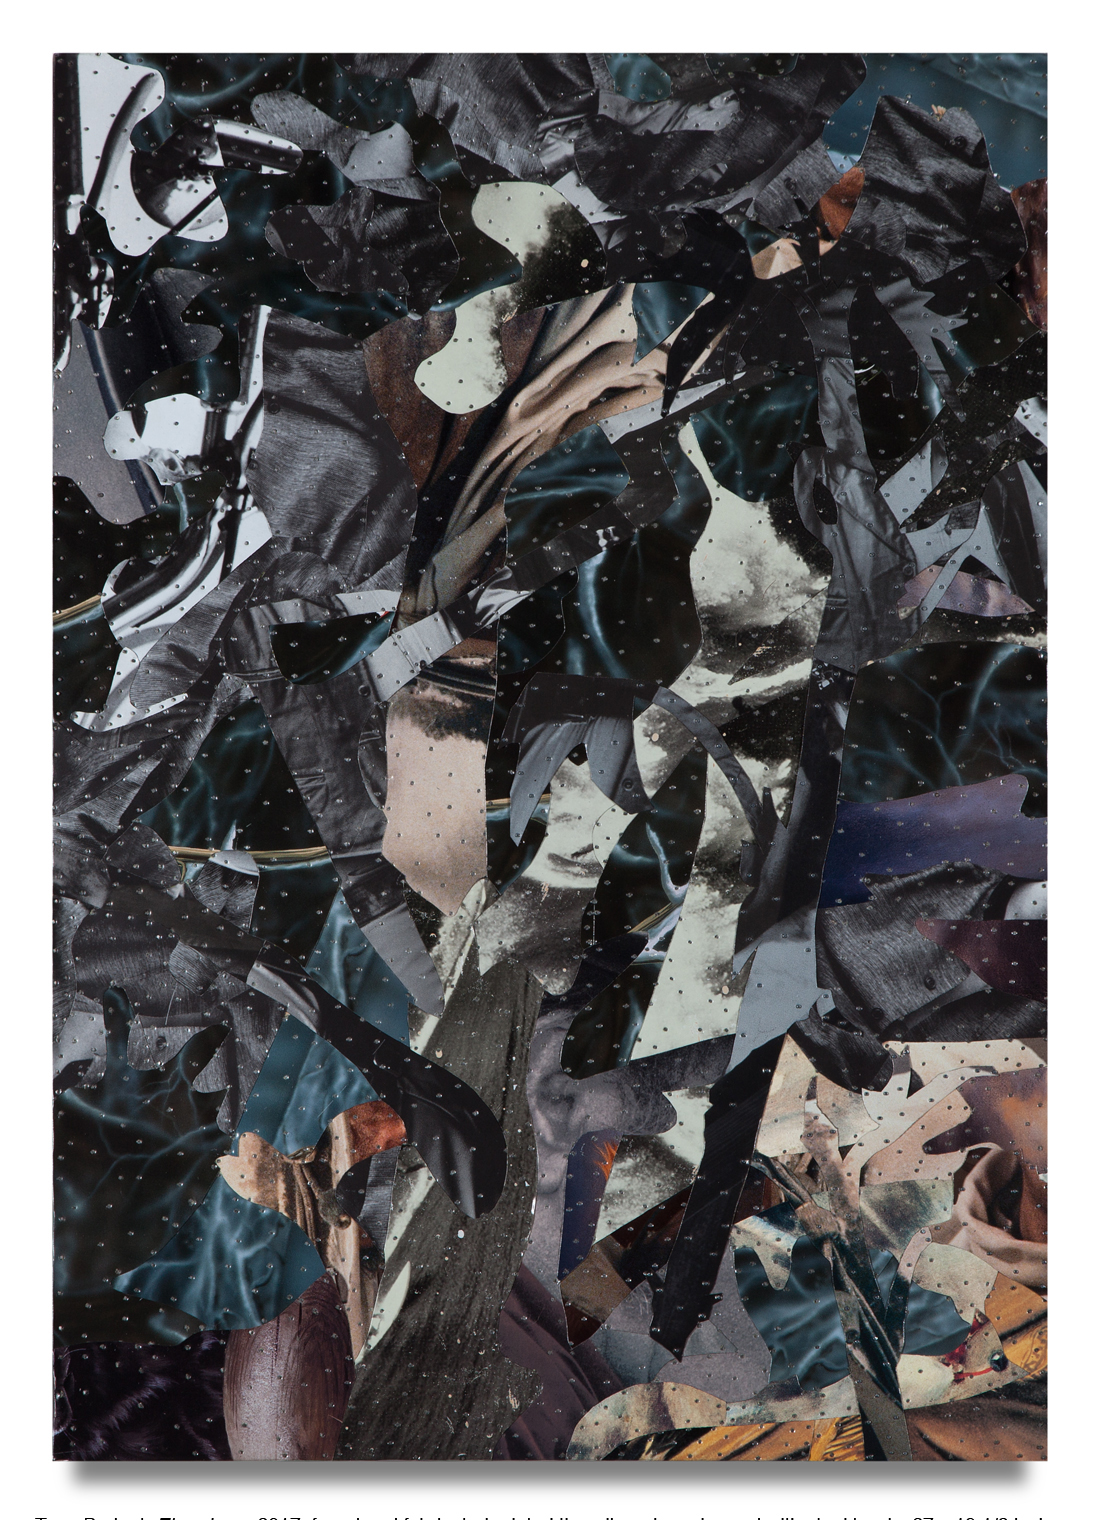 """Tony Berlant, """"Elsewhere,"""" 2017, found and fabricated printed tin collaged on plywood with steel brads, 27 x 19 1/2 inches"""